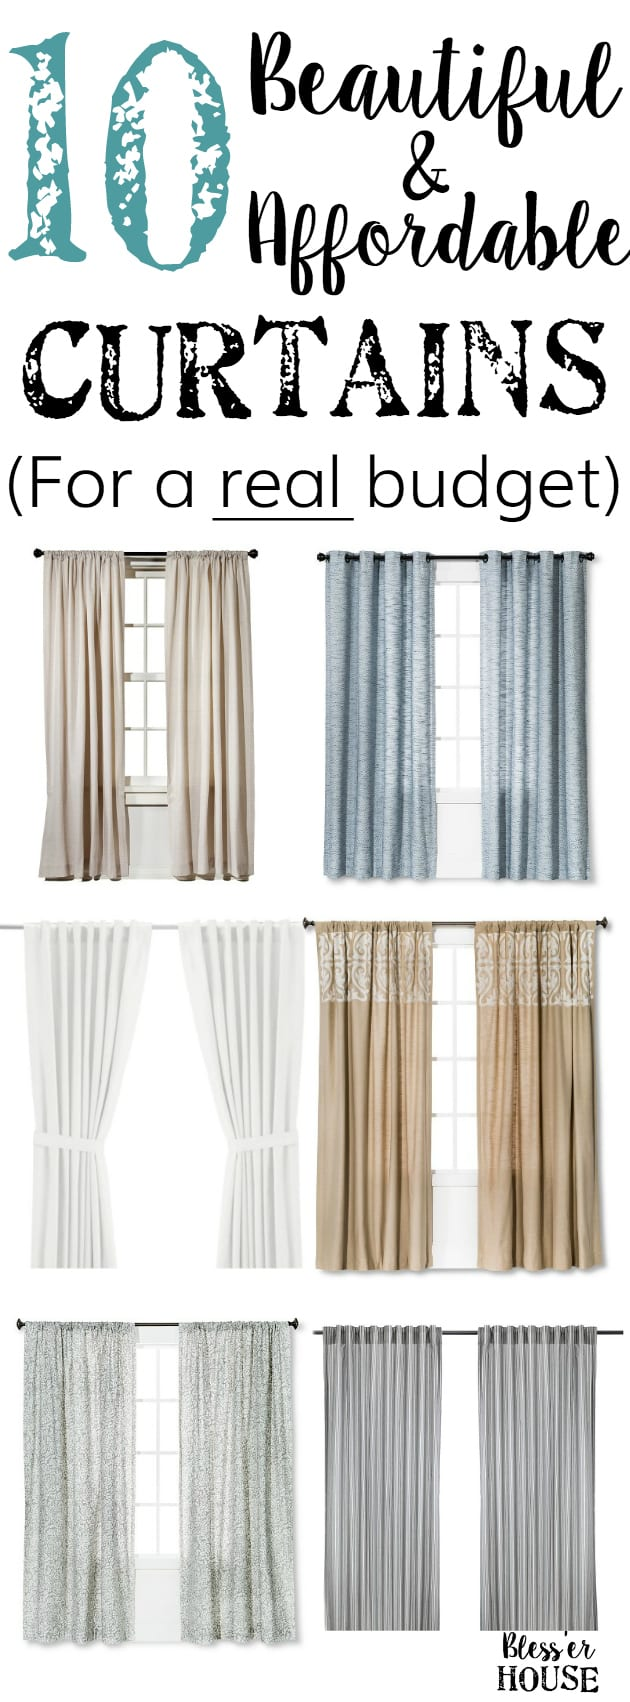 10 Beautiful and Affordable Curtains for a Real Budget | blesserhouse.com - 10 extra long curtains for under $40